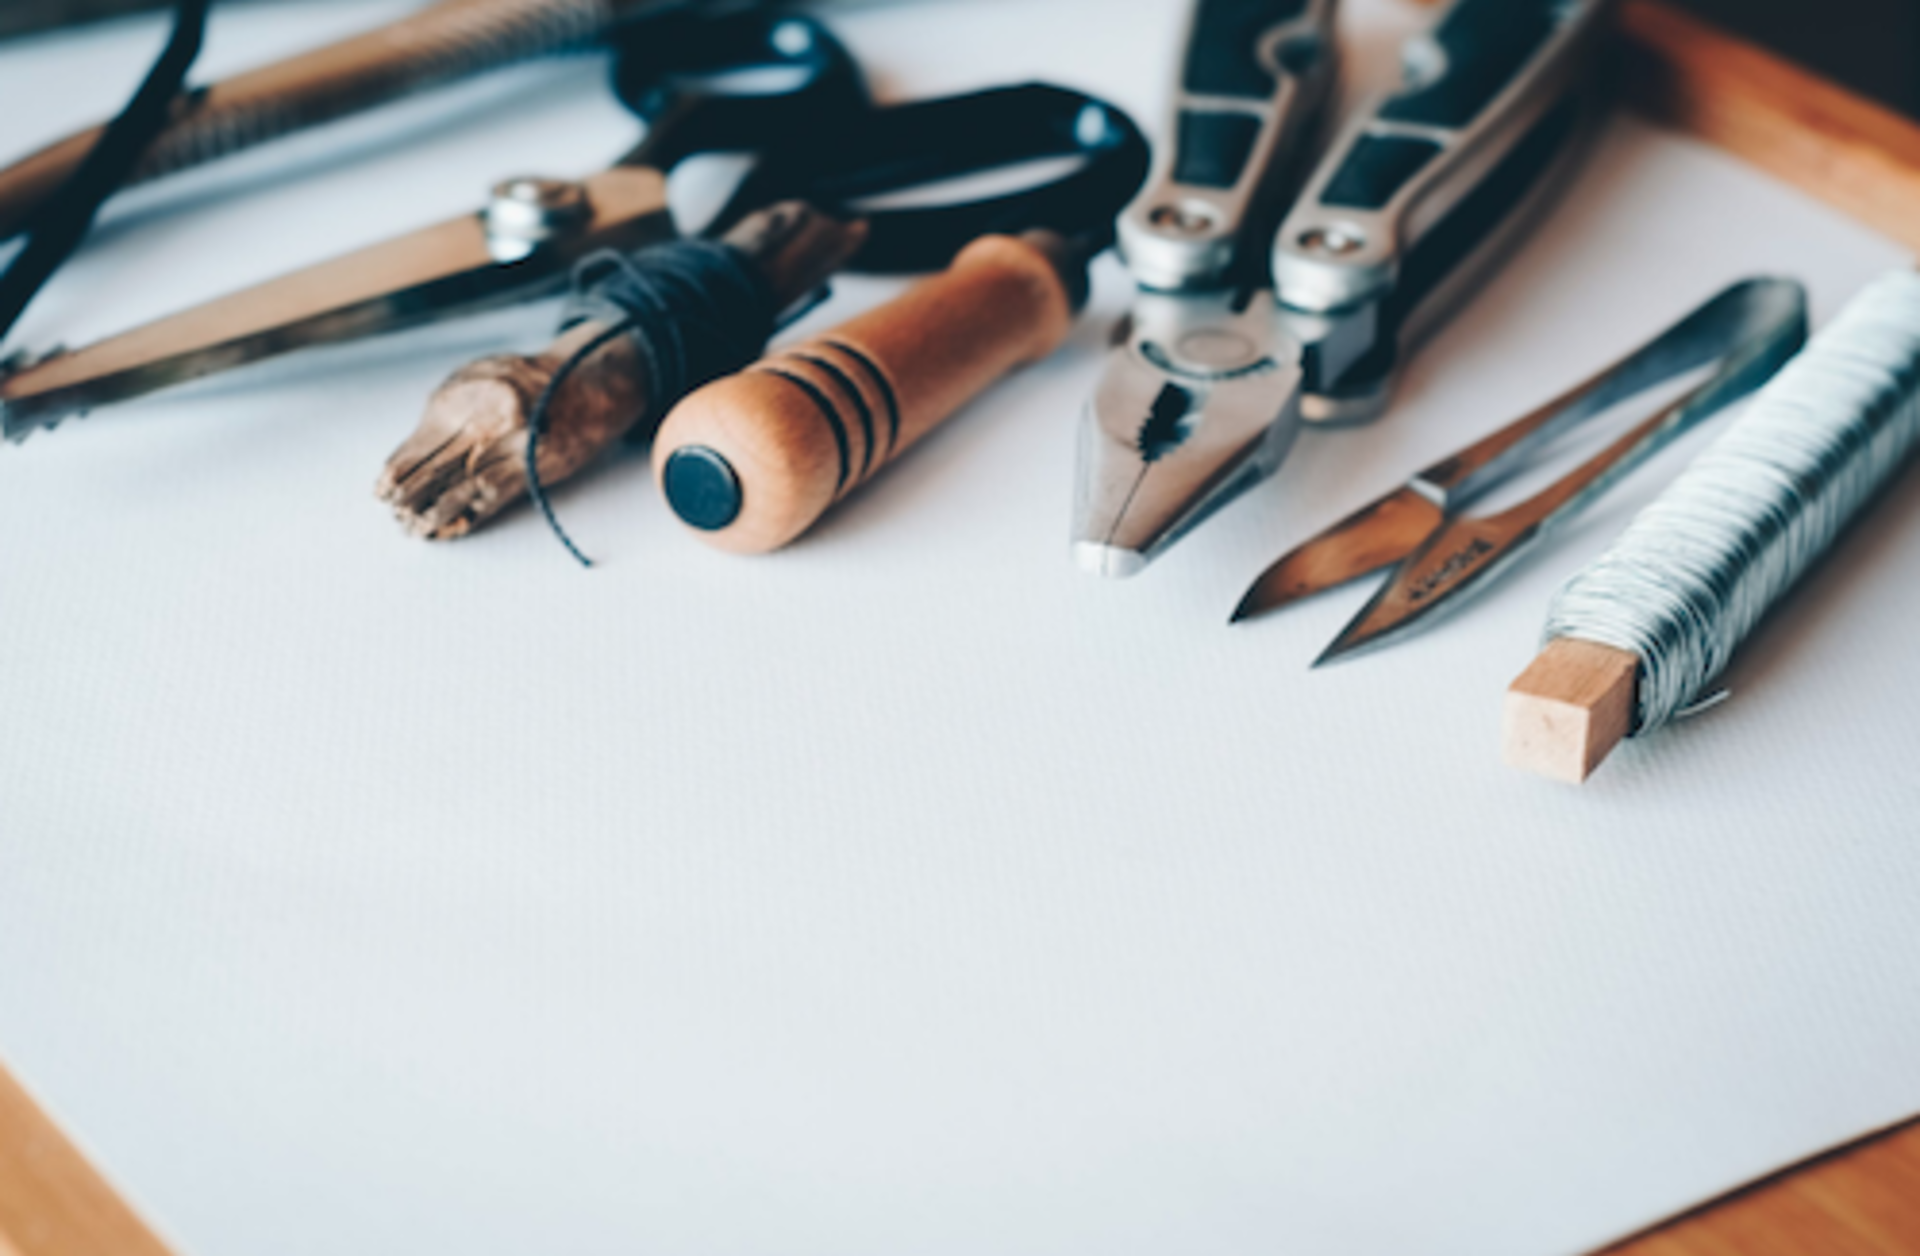 11 Home Improvements That Can Boost Your Property's Value